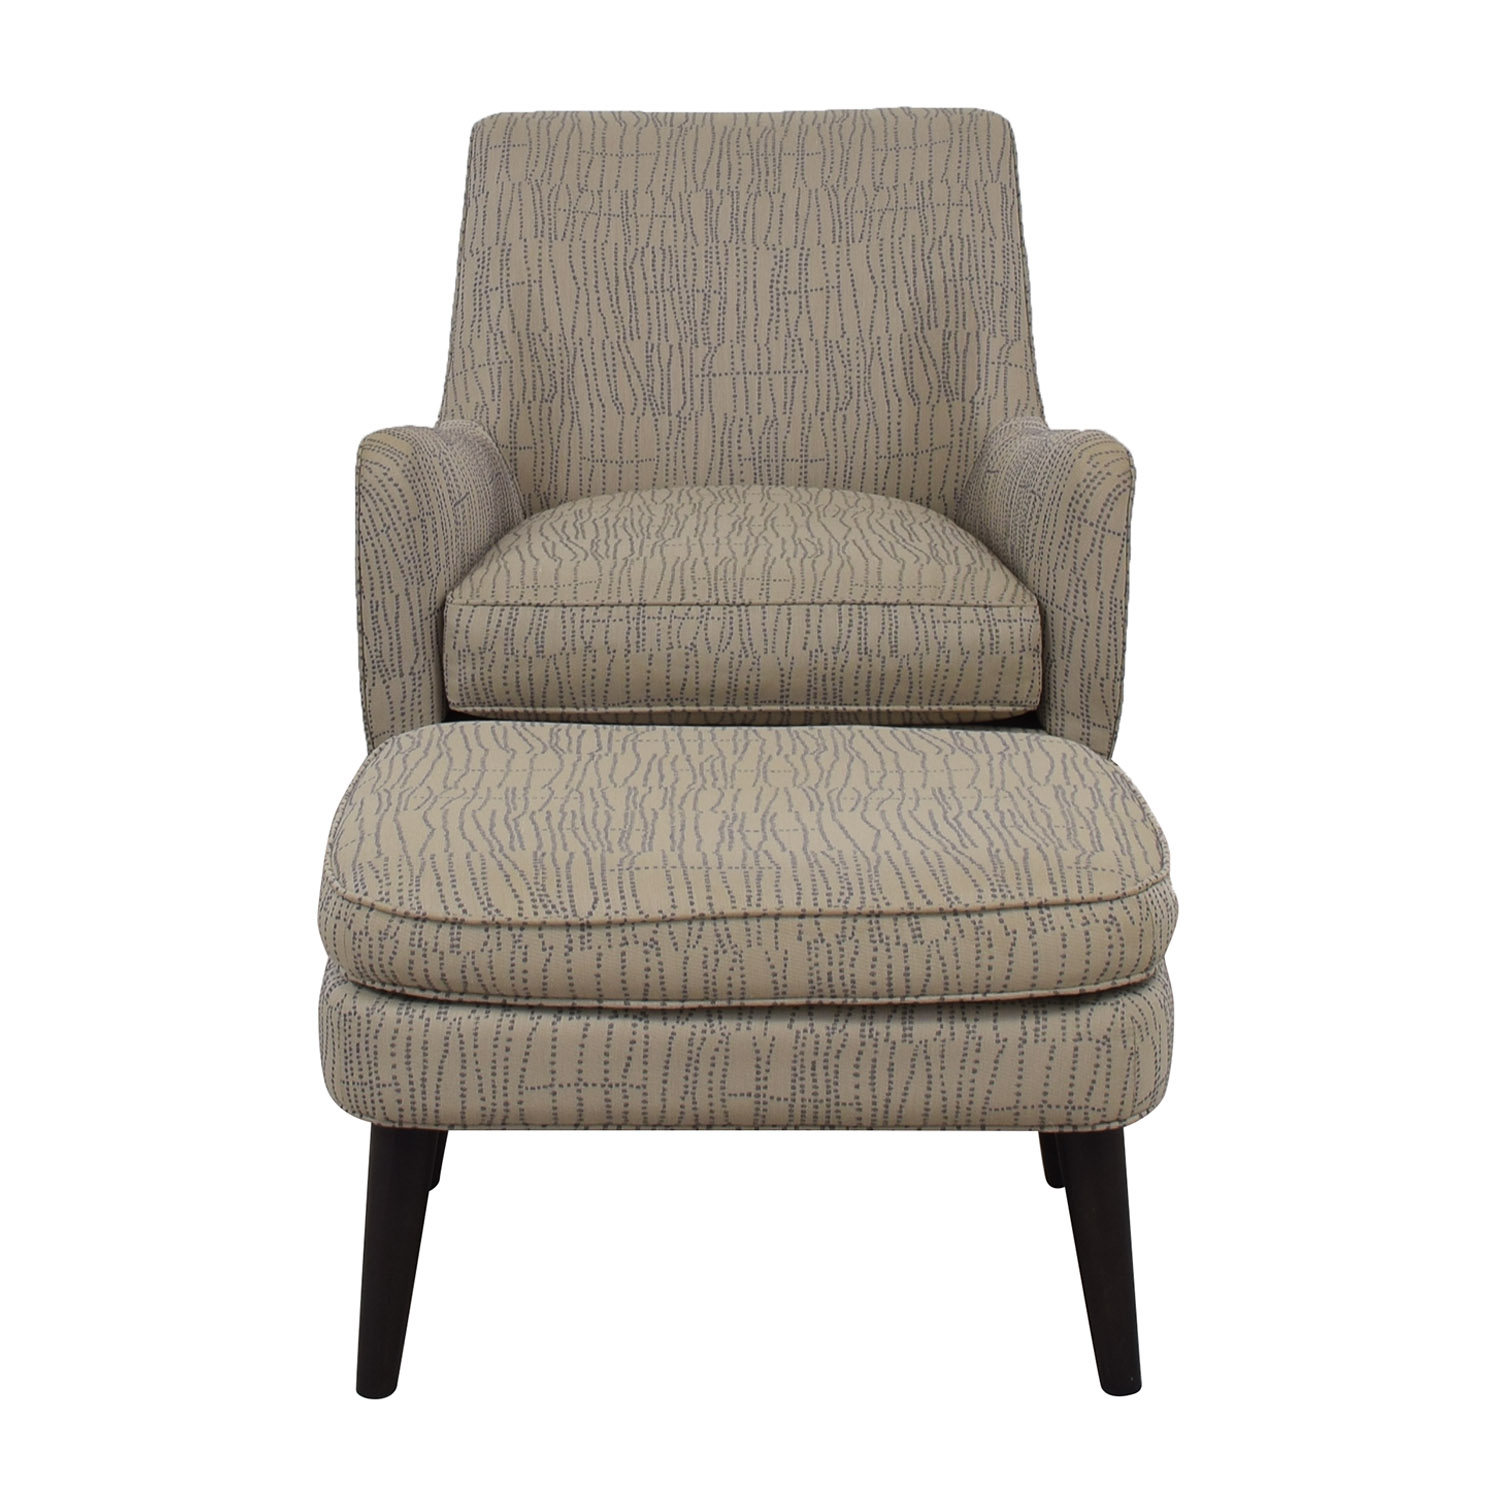 Room & Board Room & Board Quinn Grey Chair and Ottoman